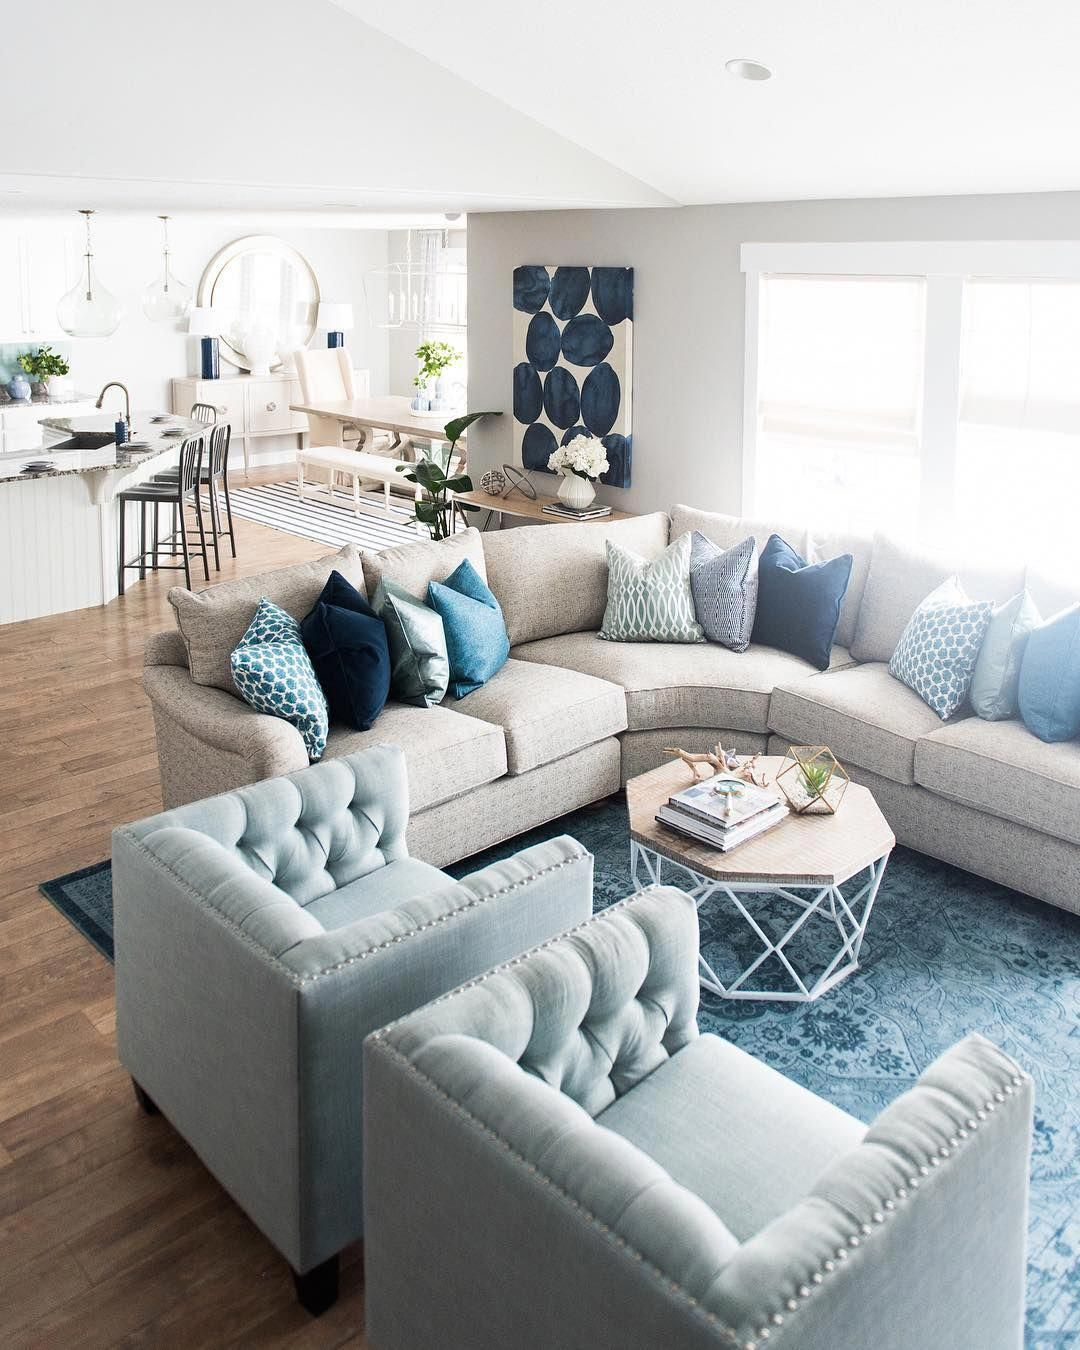 With the brand-new craze for interior decorating inspired by ...